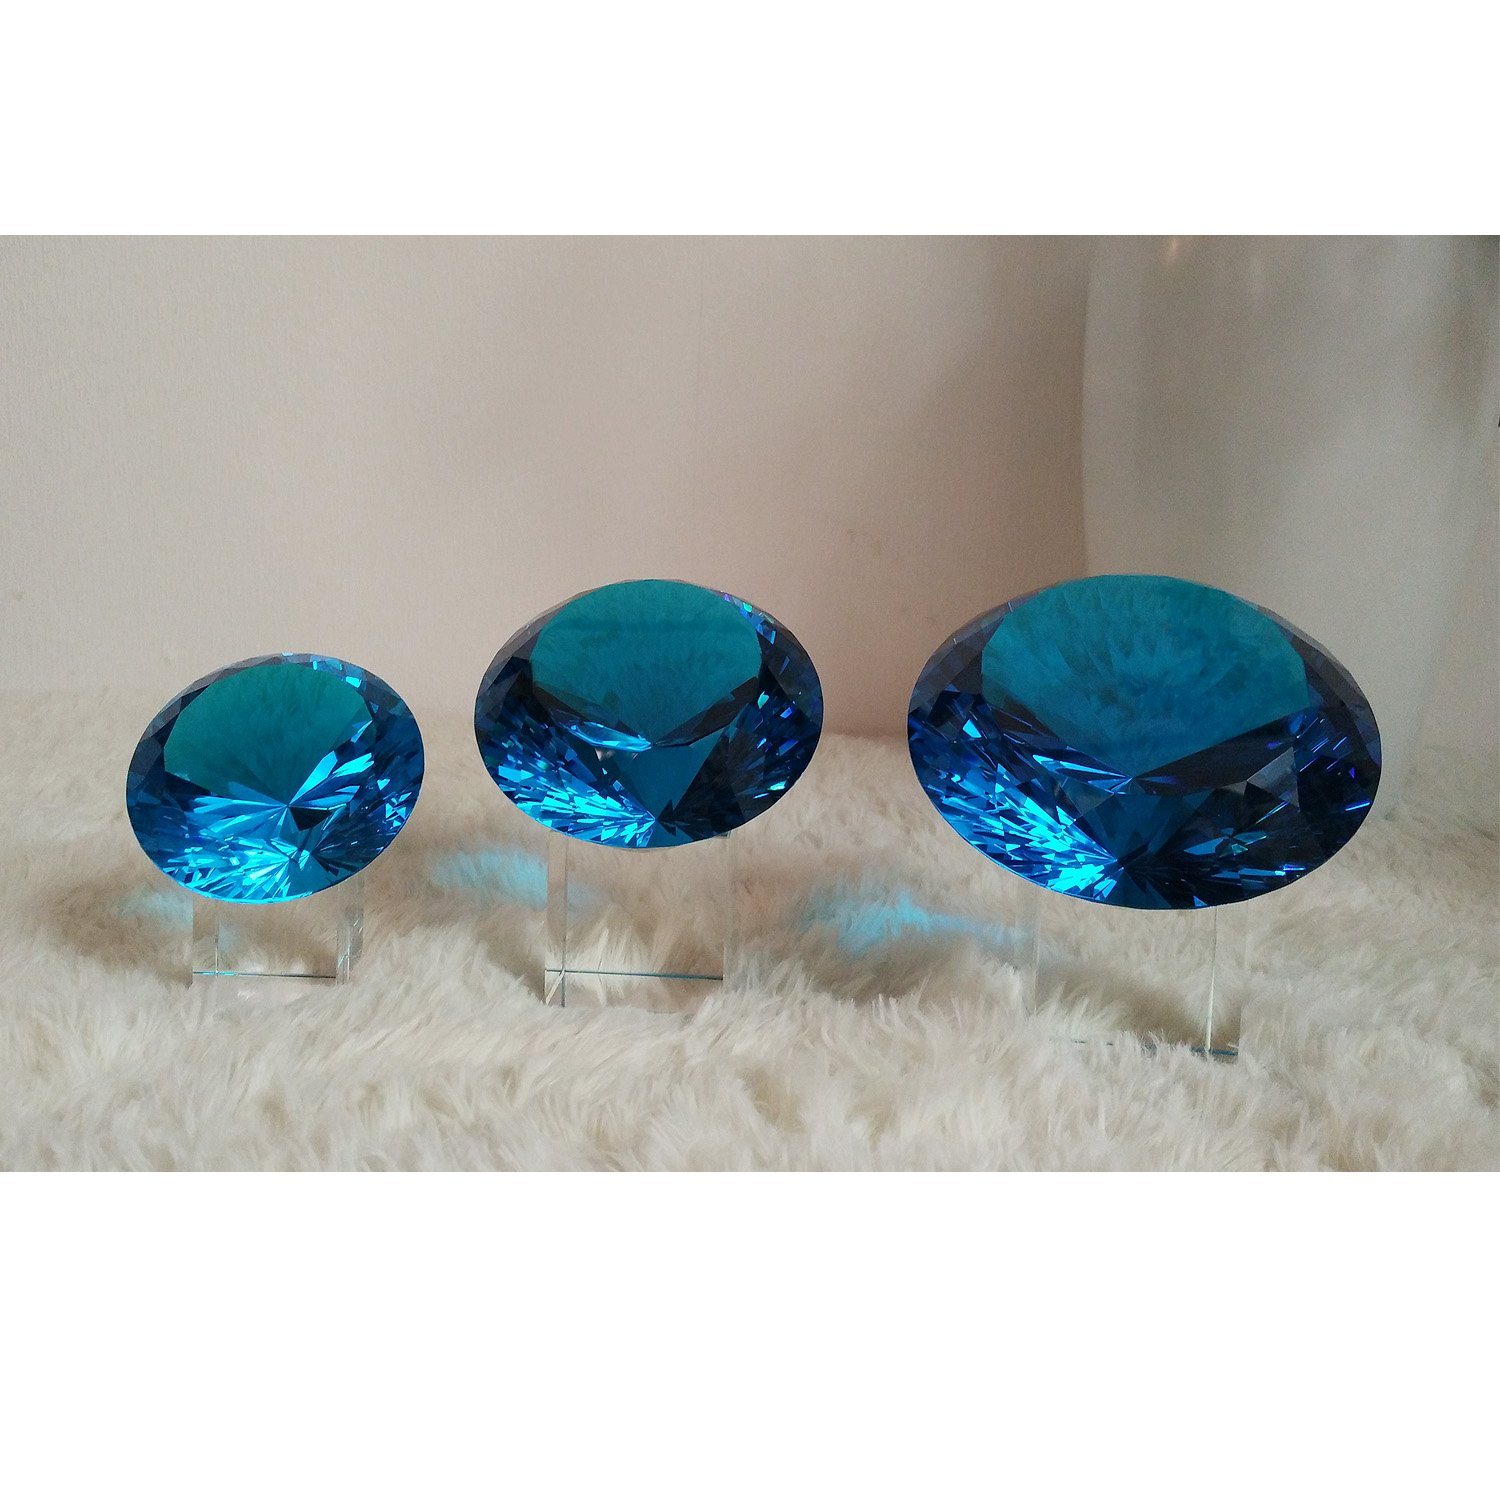 BRLIGHTING Cobalt Blue crystal Diamond Paperweight on stand for Office, Lovely Gift for Friends and Family (D120mm / 4.73'') by BRLIGHTING (Image #9)